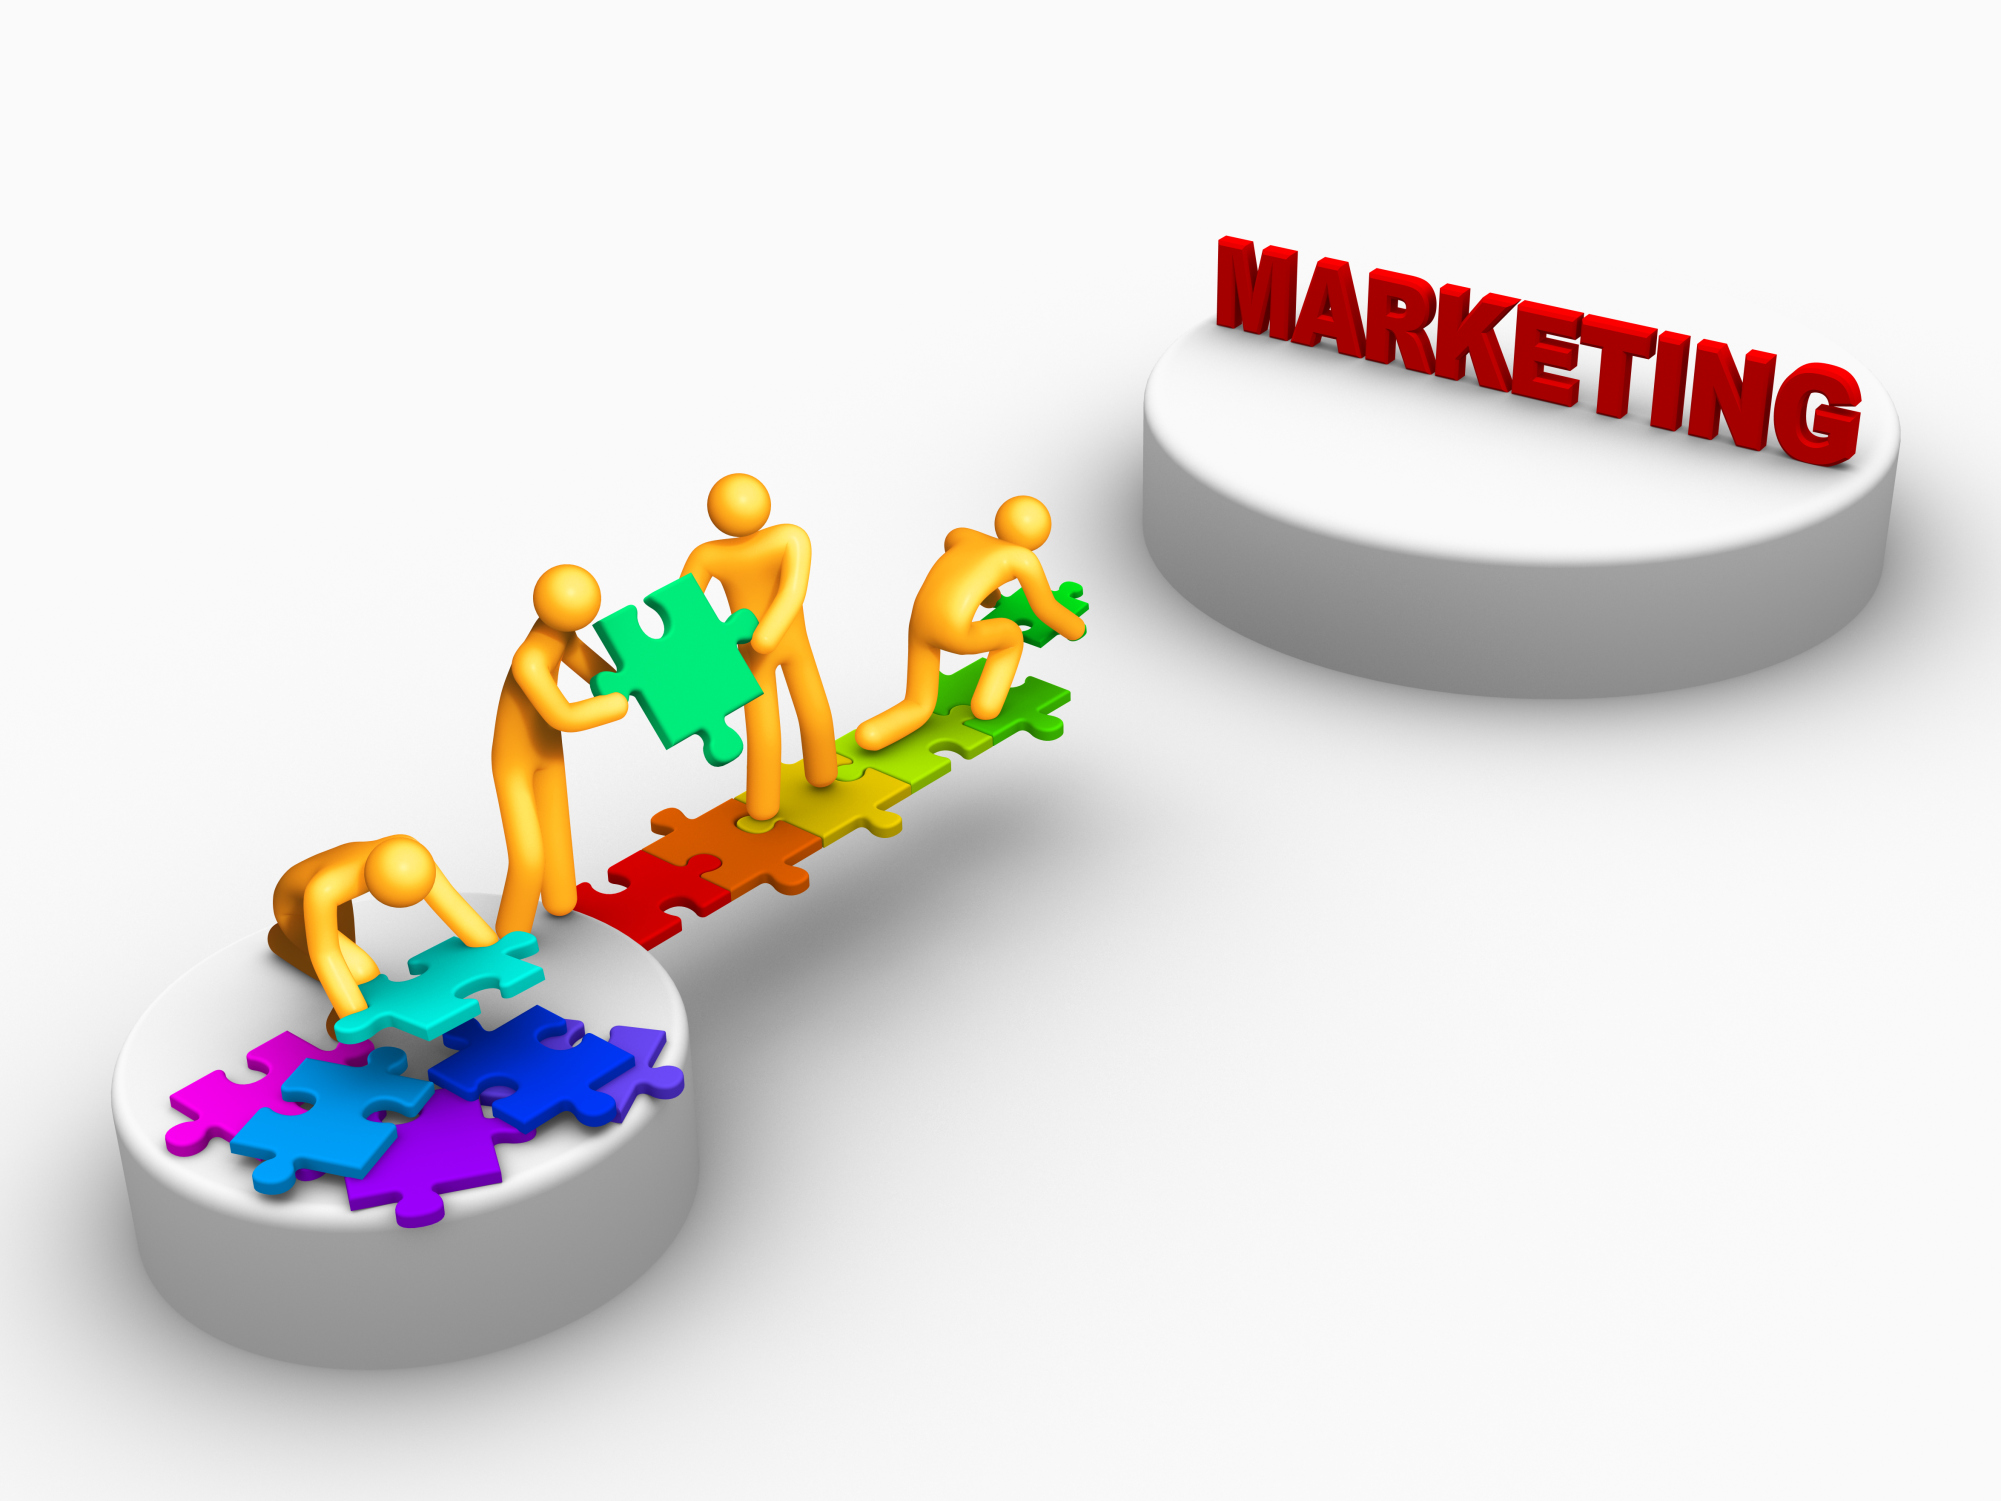 04-marketing-relacional-servicios.jpg